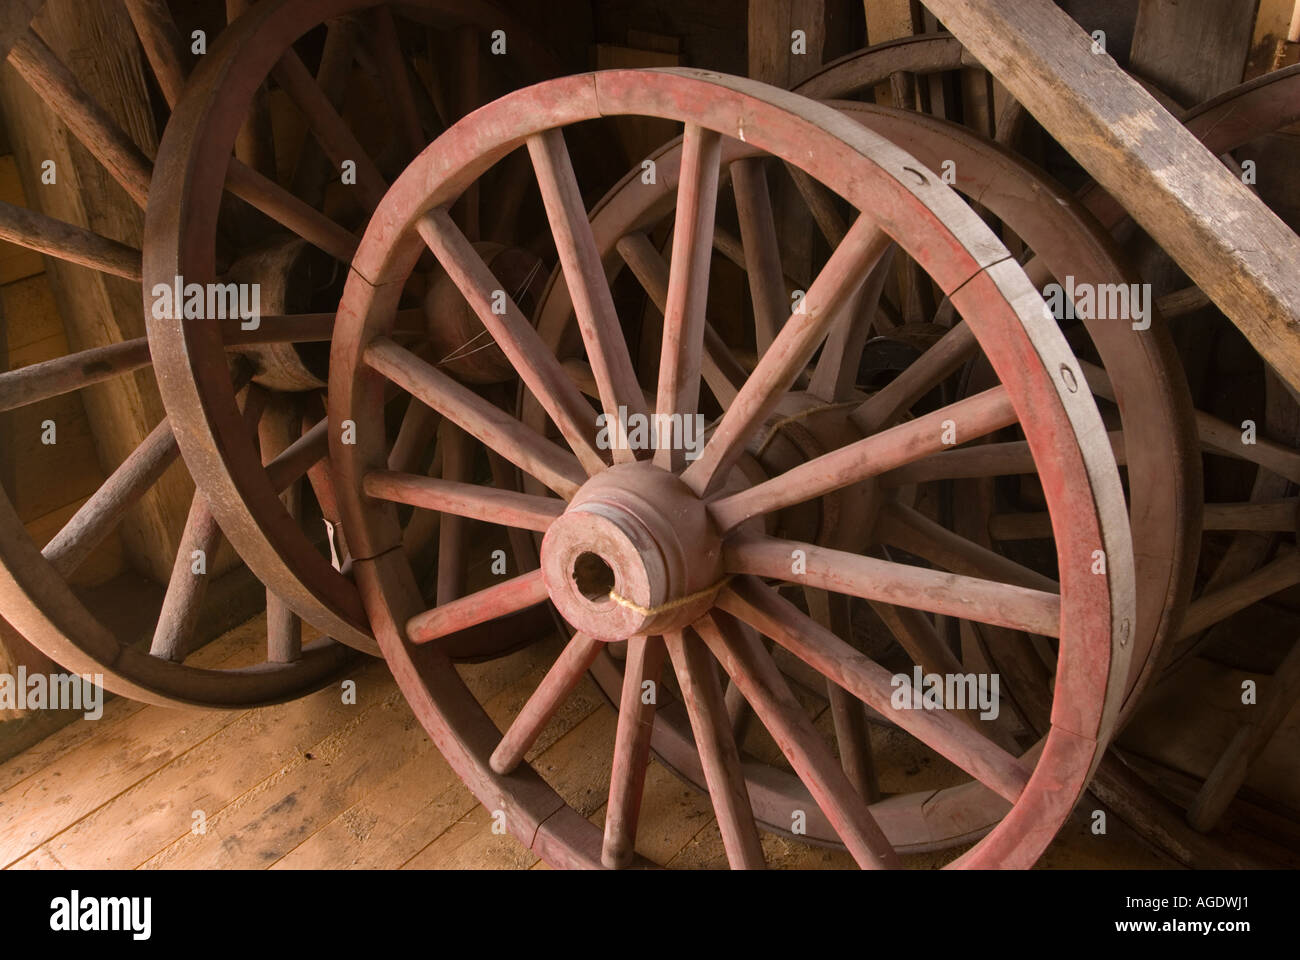 Elegant Stock Image Of Old Wagon Wheels In New Brunswick Canada Carriage House